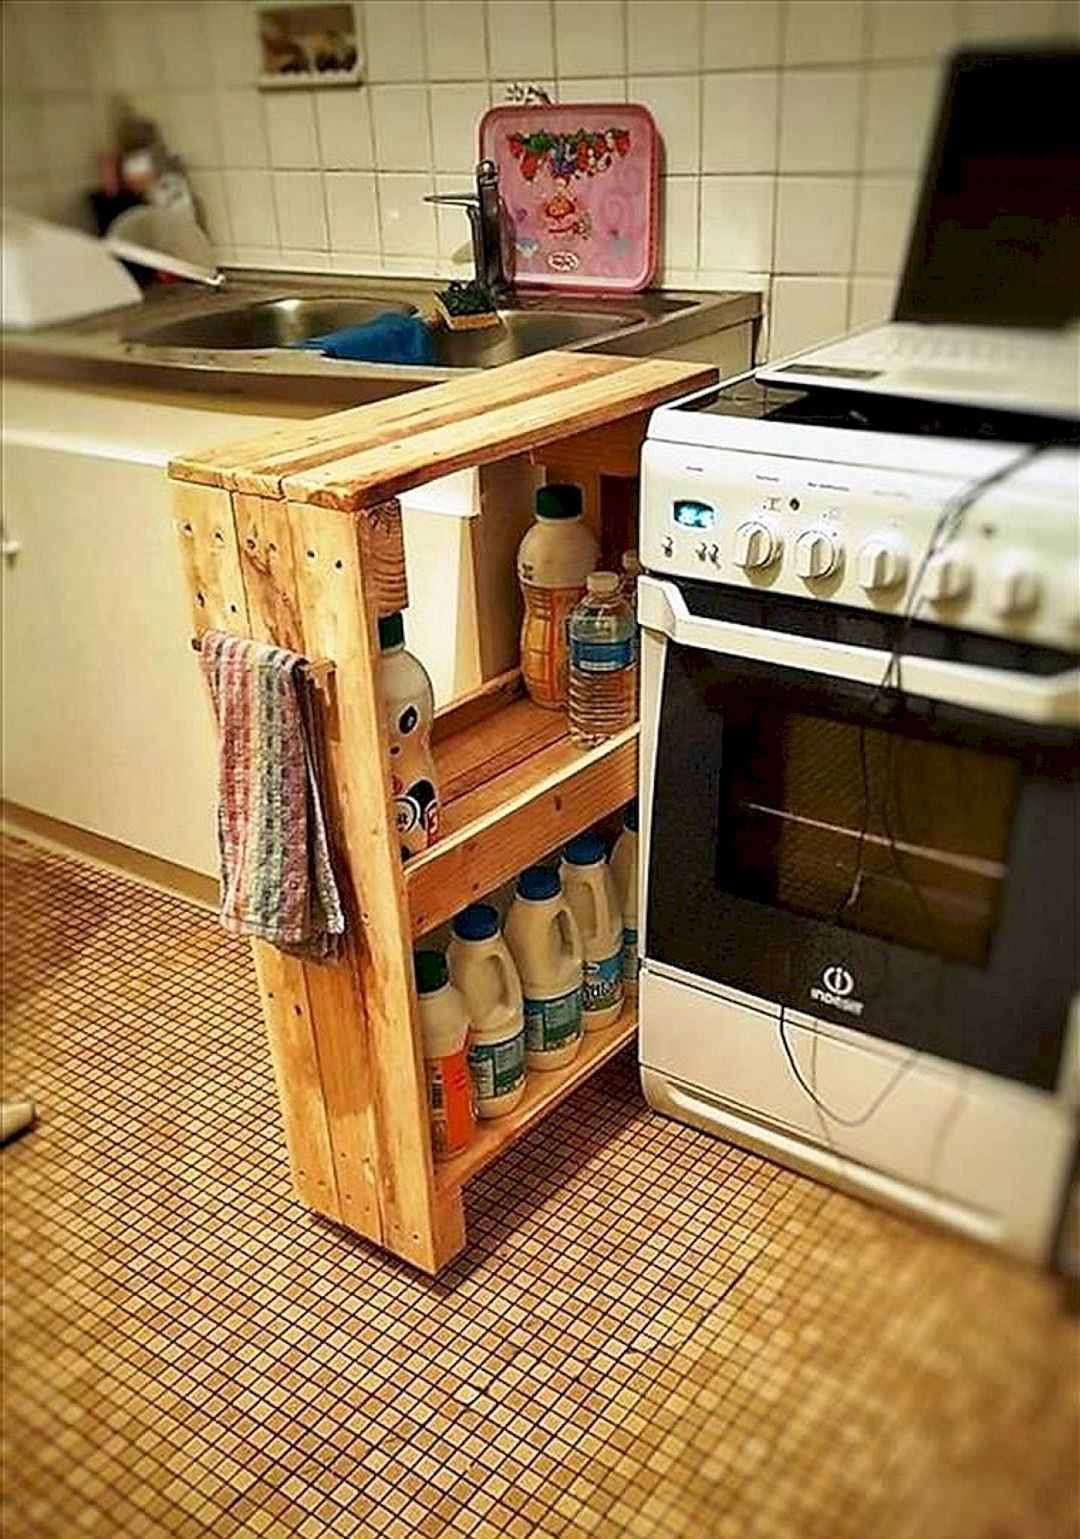 15 Stunning Diy Kitchen Storage Solutions For Small Space And Space Saving Ideas Freshouz Com Diy Kitchen Storage Modern Kitchen Storage Diy Furniture Easy